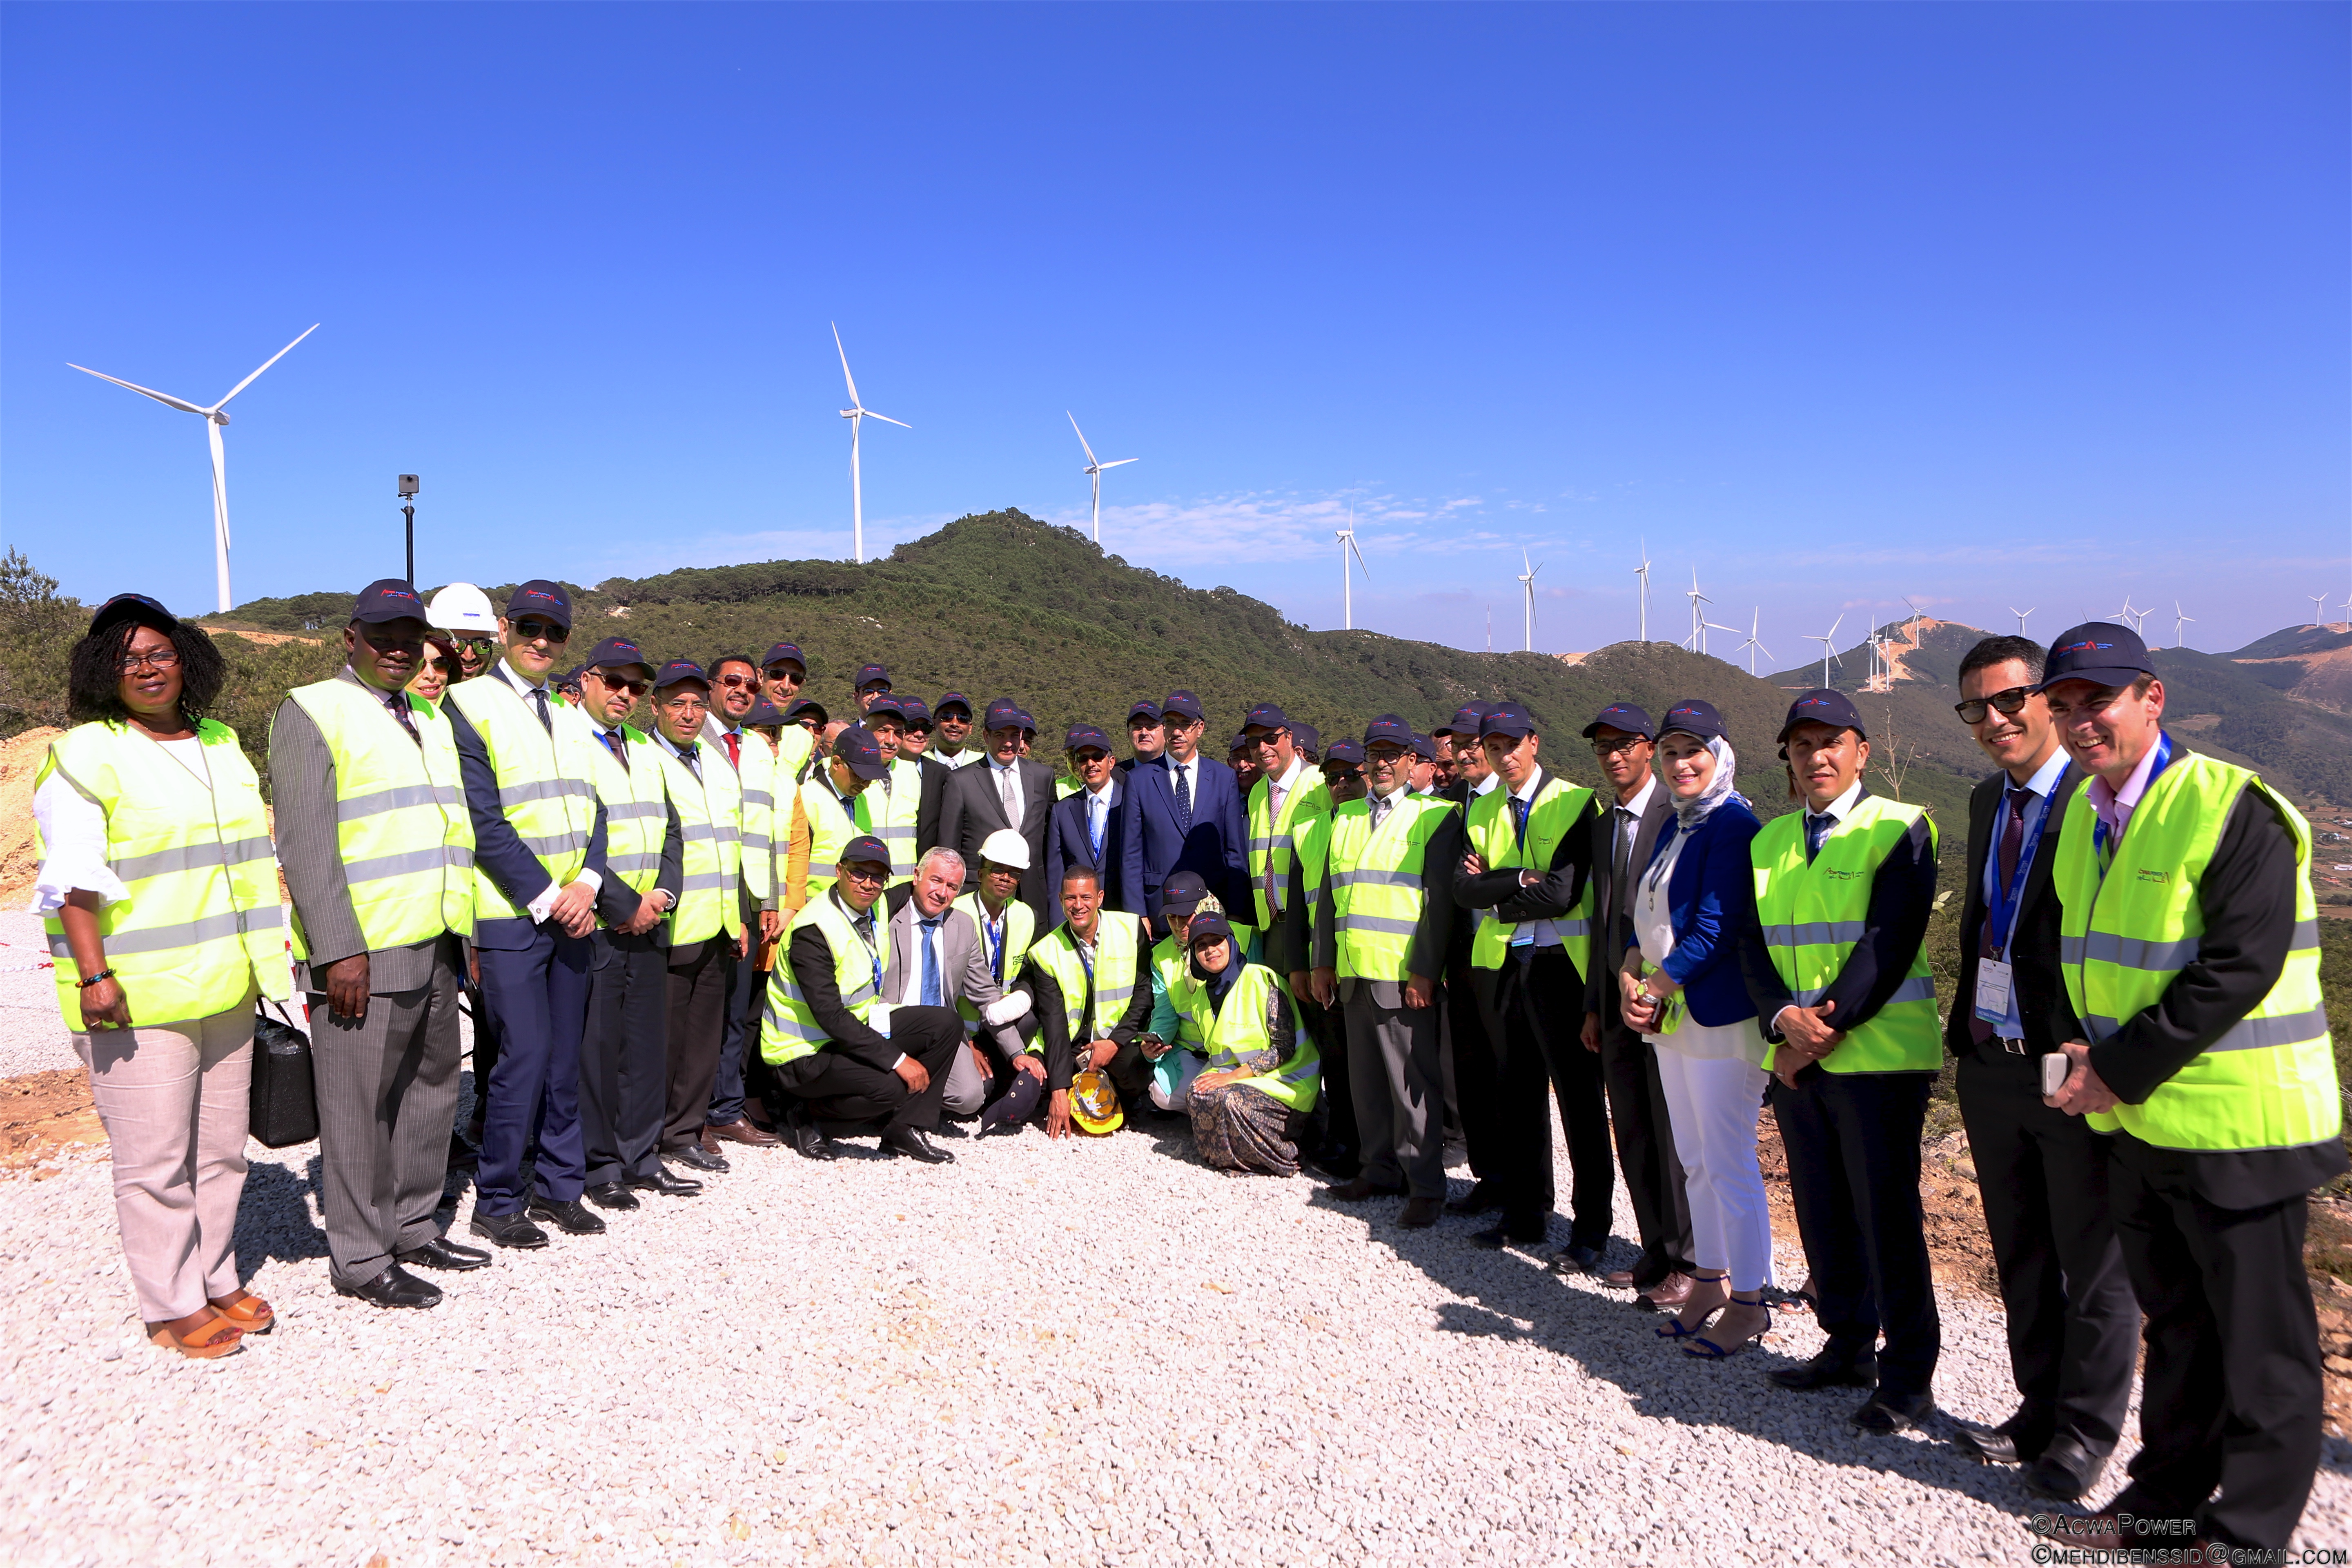 120 MW wind farm developed by ACWA Power inaugurated in Morocco